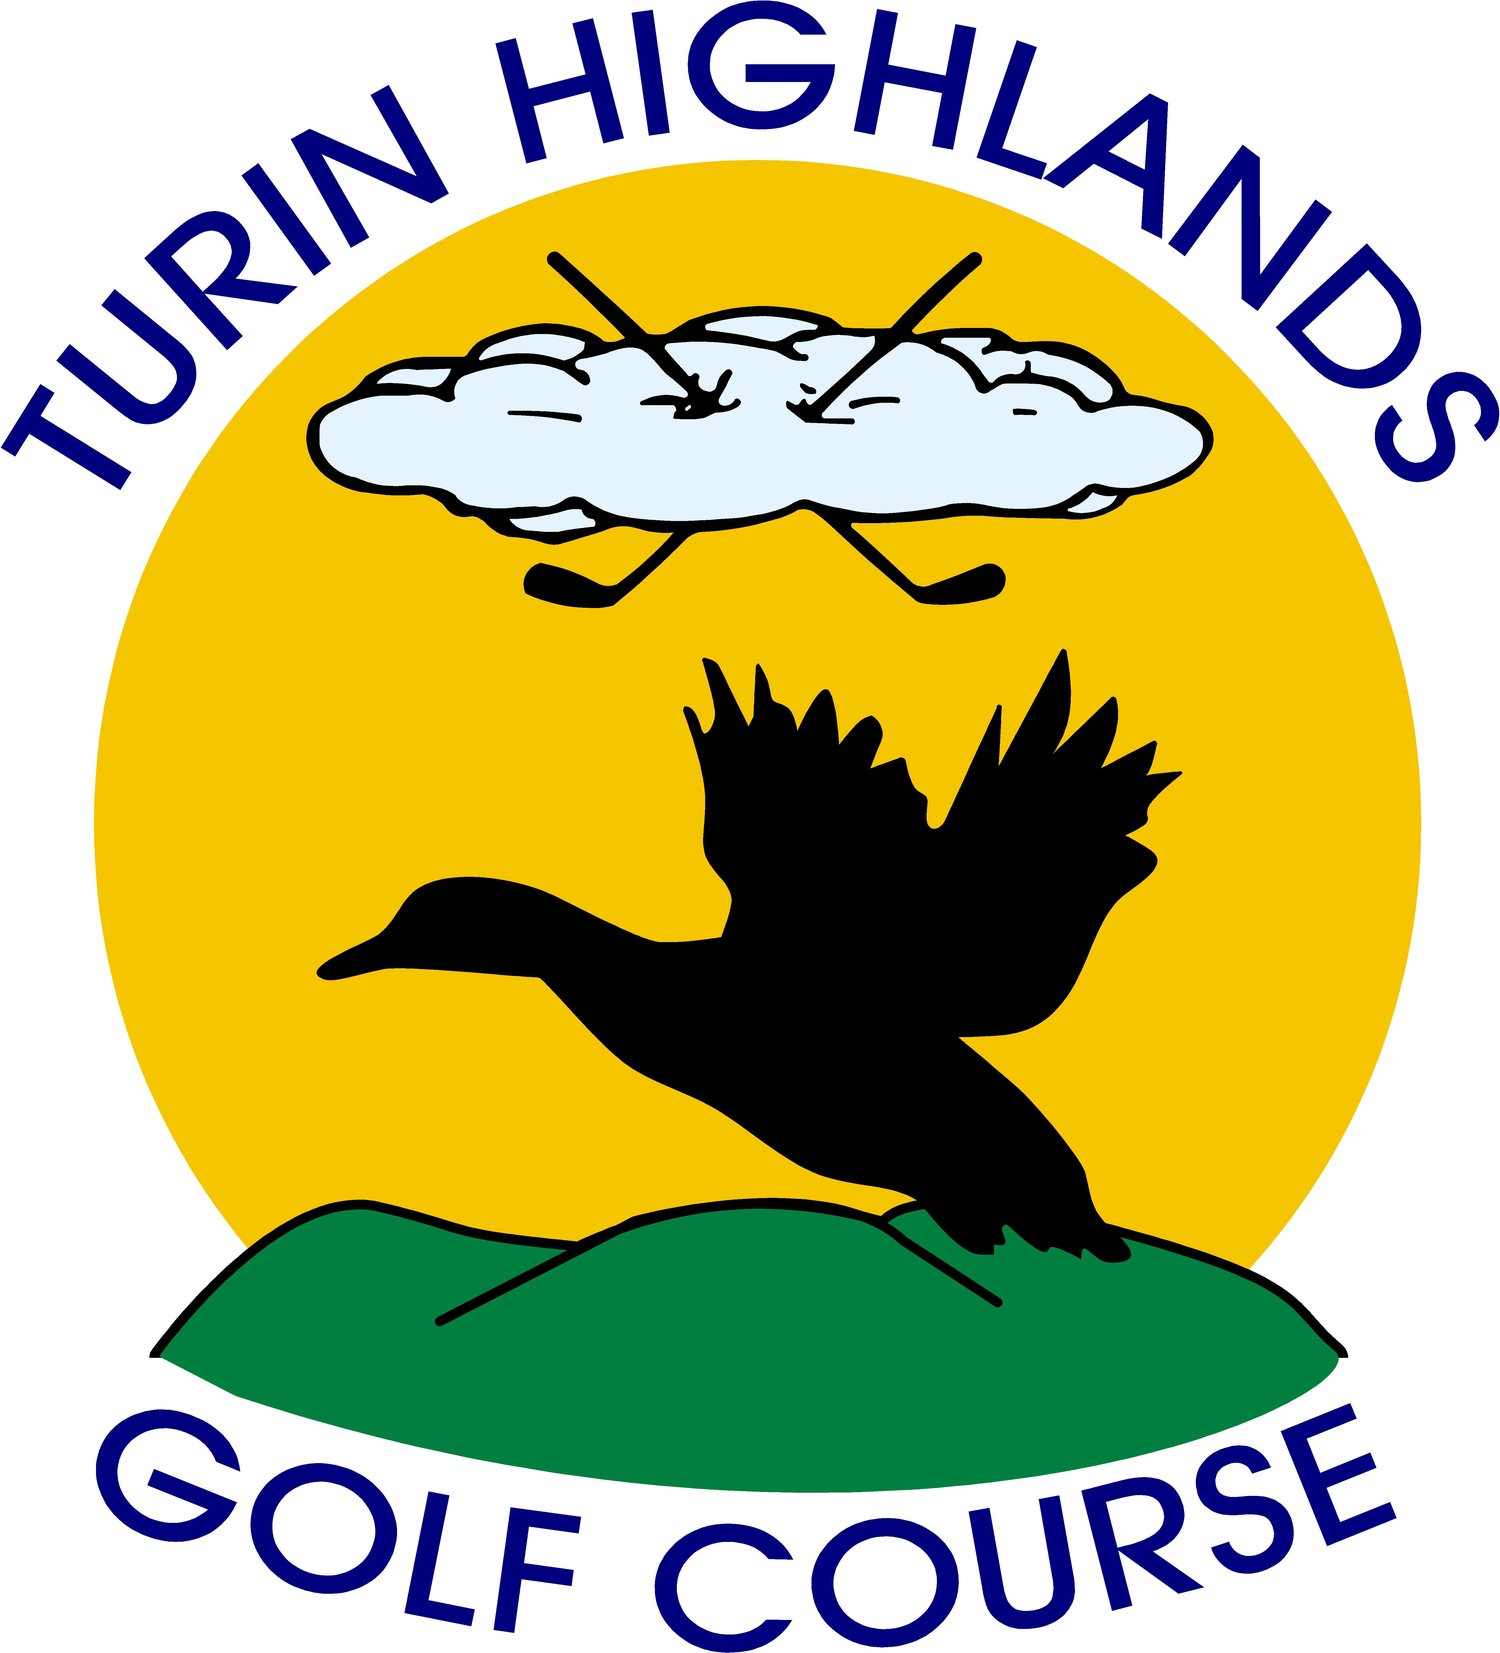 Turin Highlands Golf and Country Club